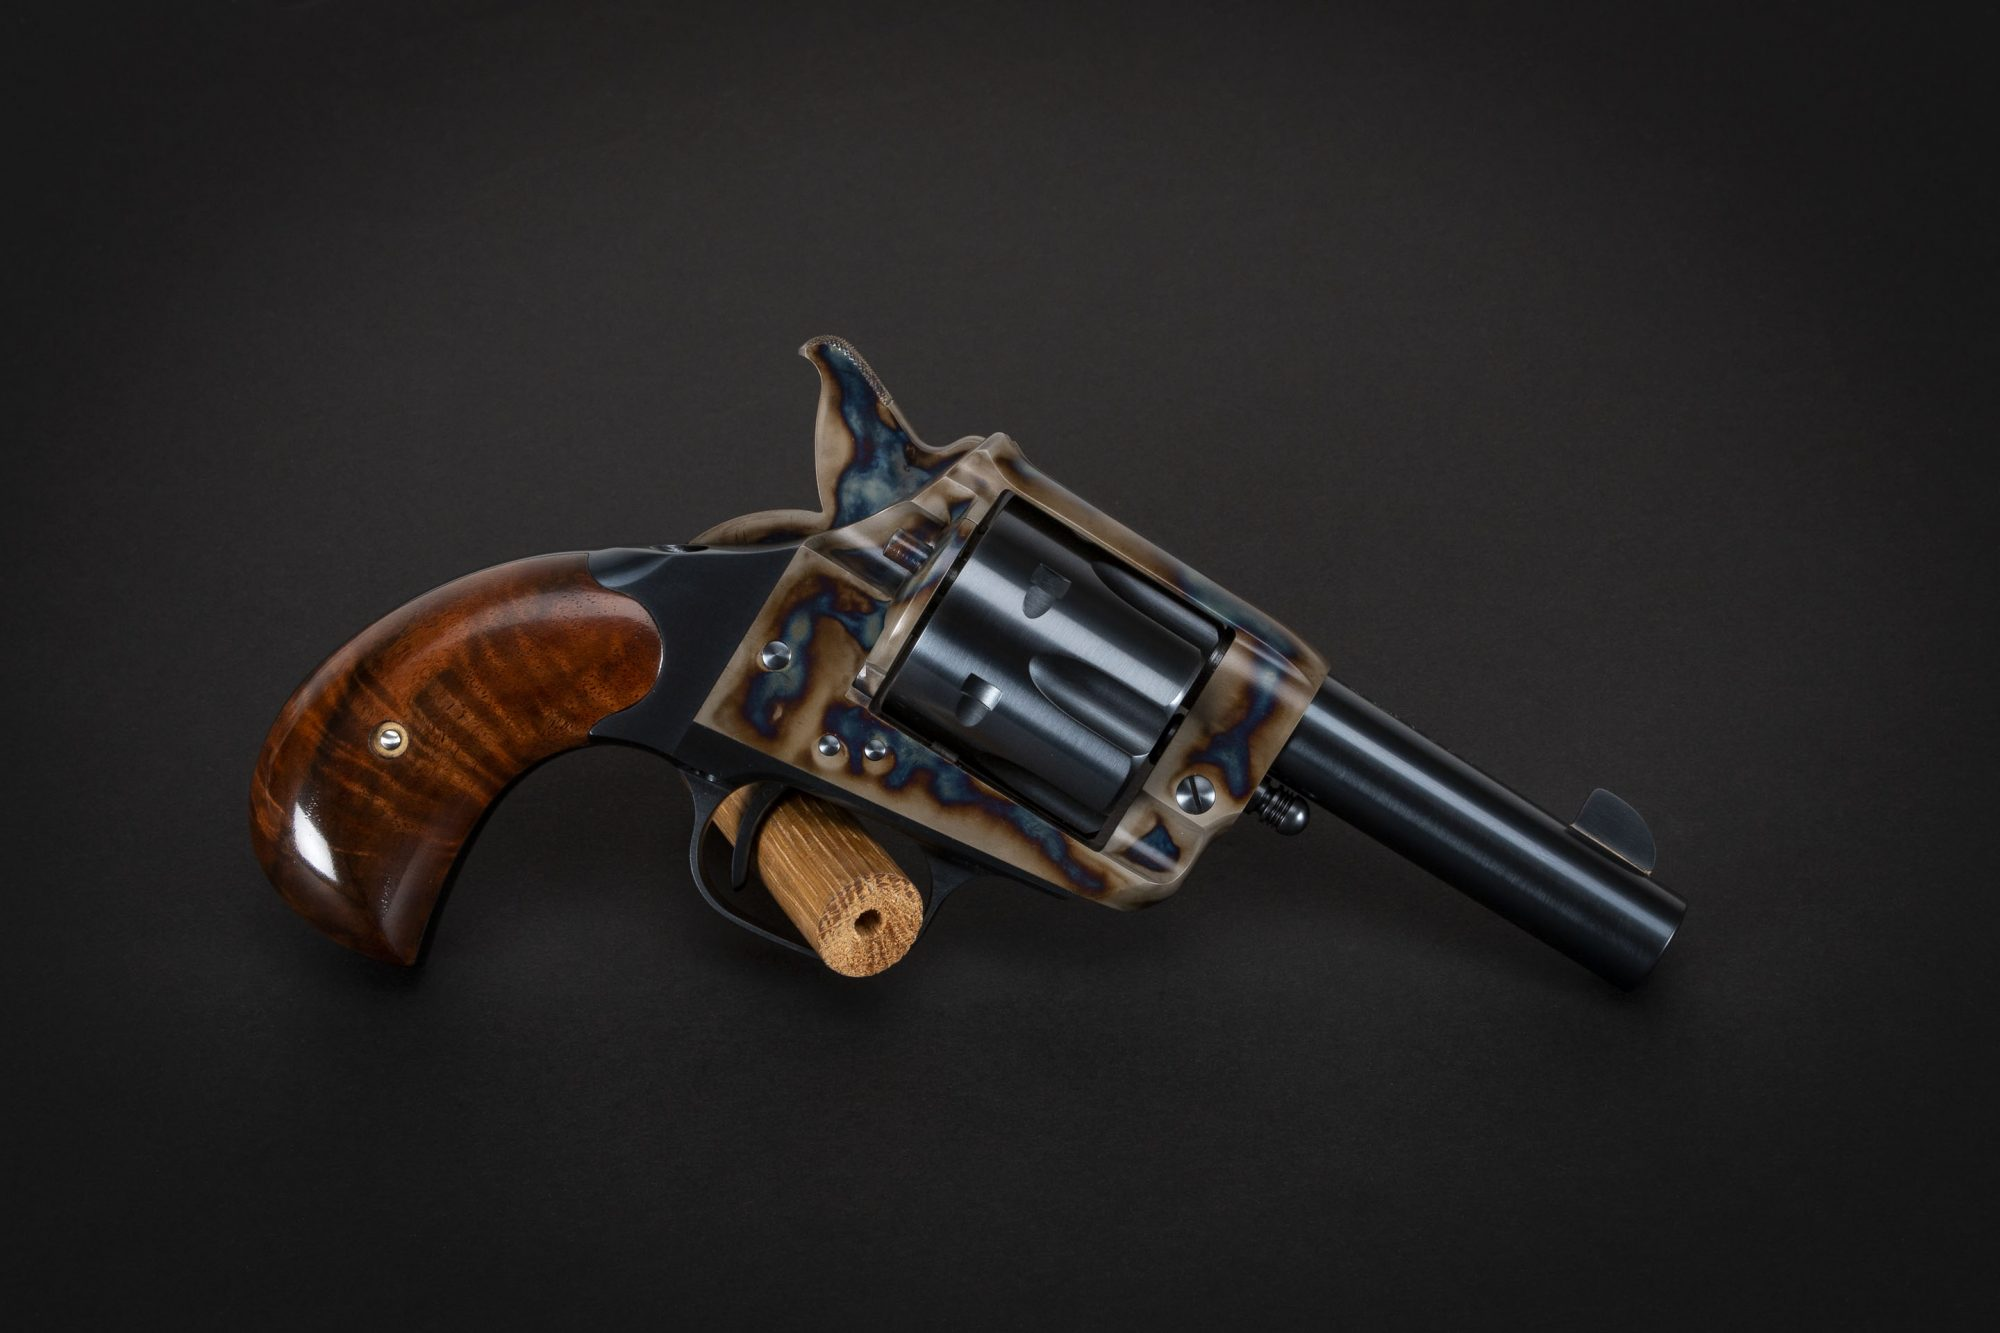 Photo of a U.S. Fire Arms (USFA) Forehand & Wadsworth single action revolver, featuring restoration-grade metal finishes by Turnbull Restoration of Bloomfield, NY